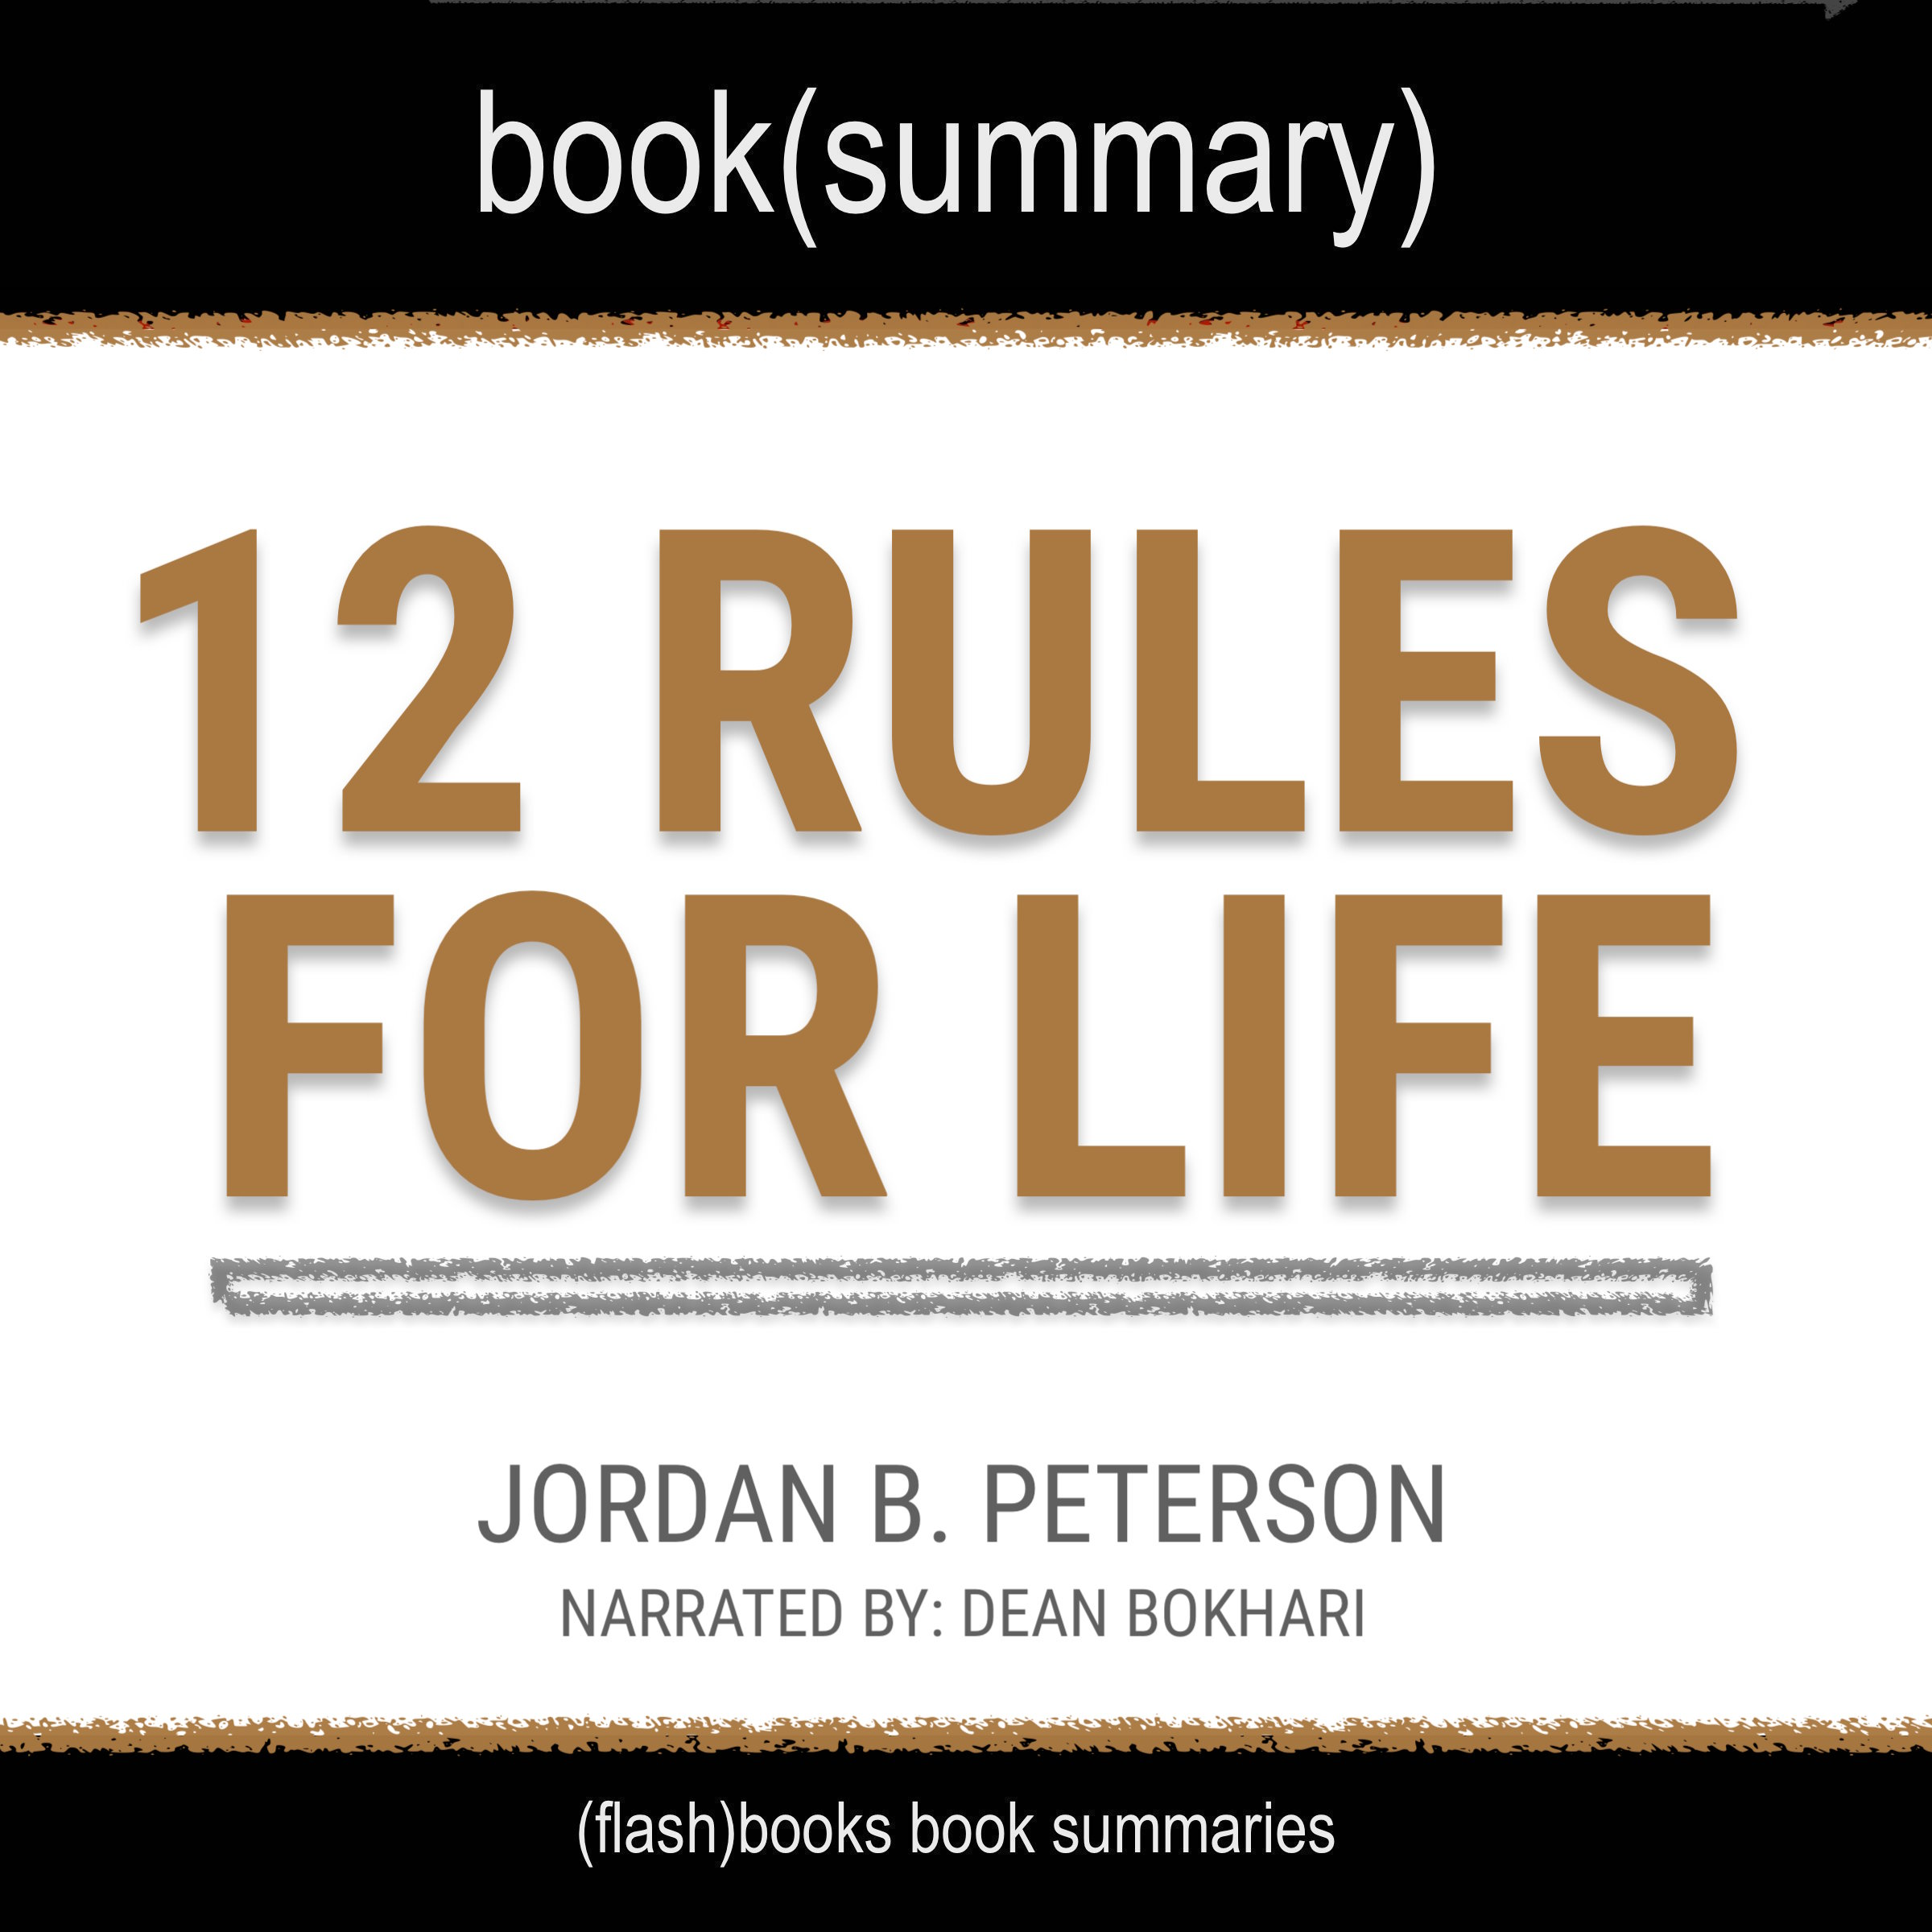 12_Rules_for_Life_by_Jordan_B_Peterson_Audiobook_Summary